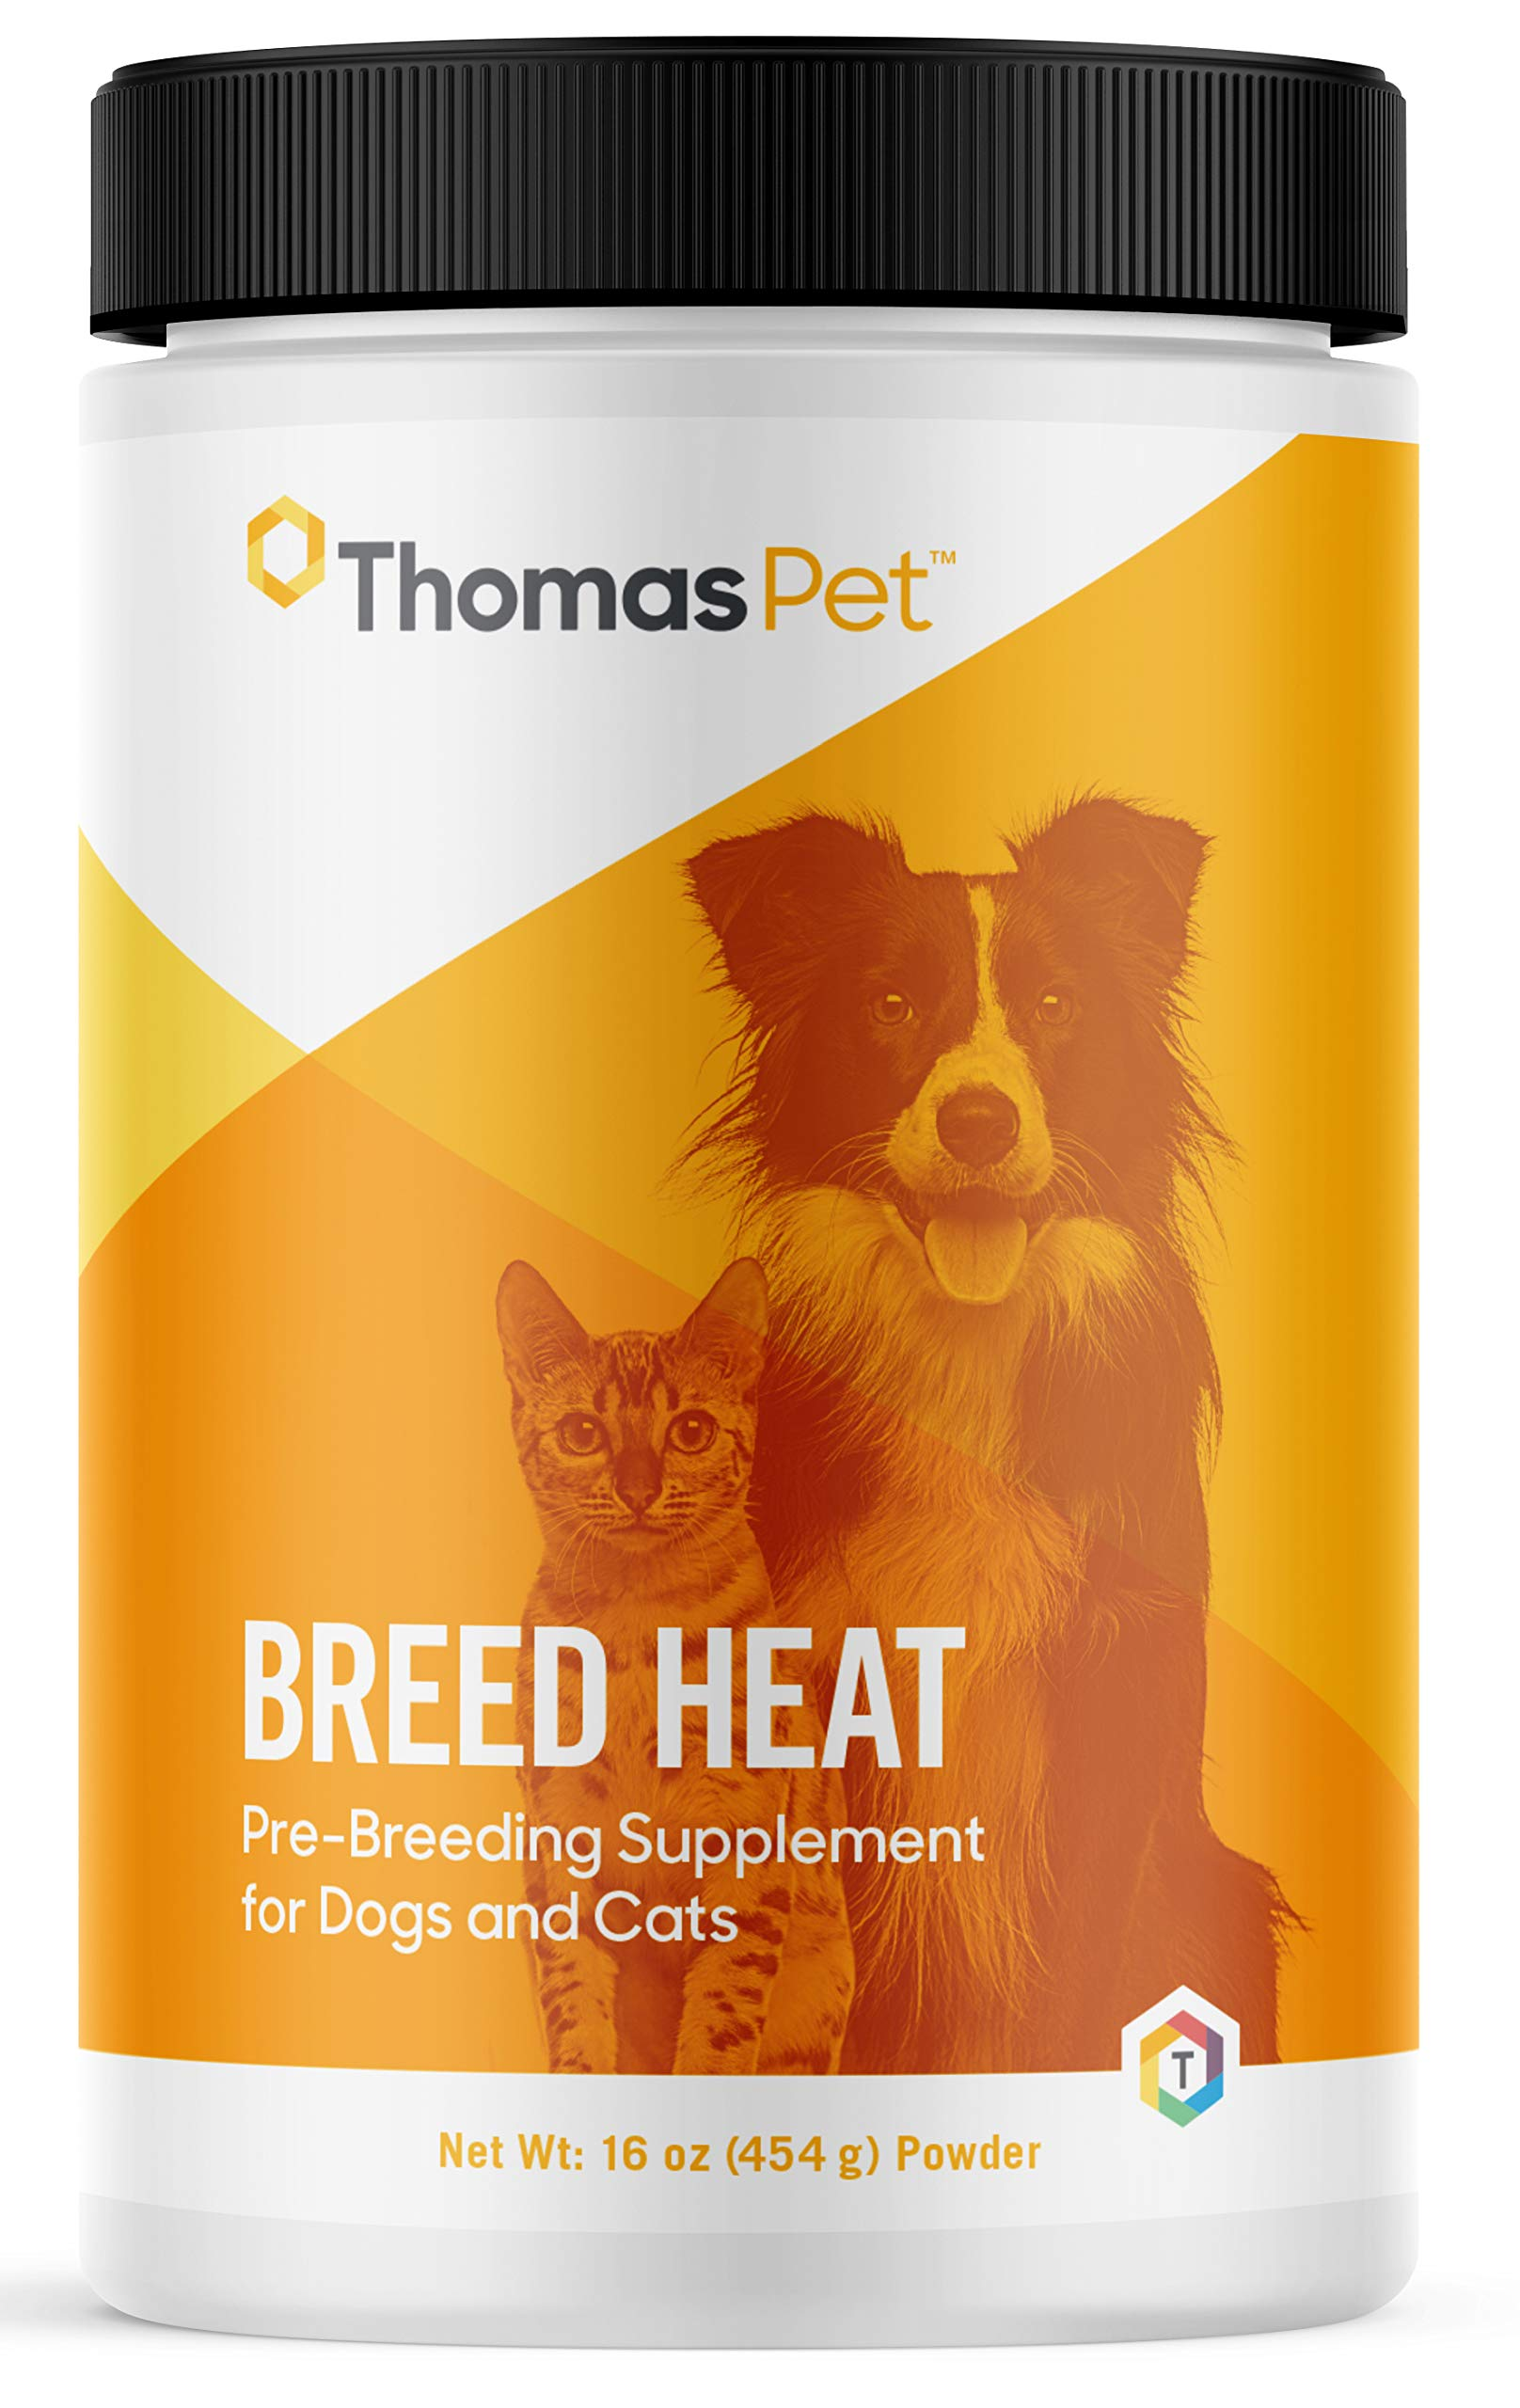 Thomas Pet Breed Heat - Helps Regulate Heat Cycles in Dogs & Cats - Supports Reproductive Health of Female Dogs & Cats - Promotes Hormone Balance & Helps Prepare Dogs for Breeding - 16 Ounce Powder